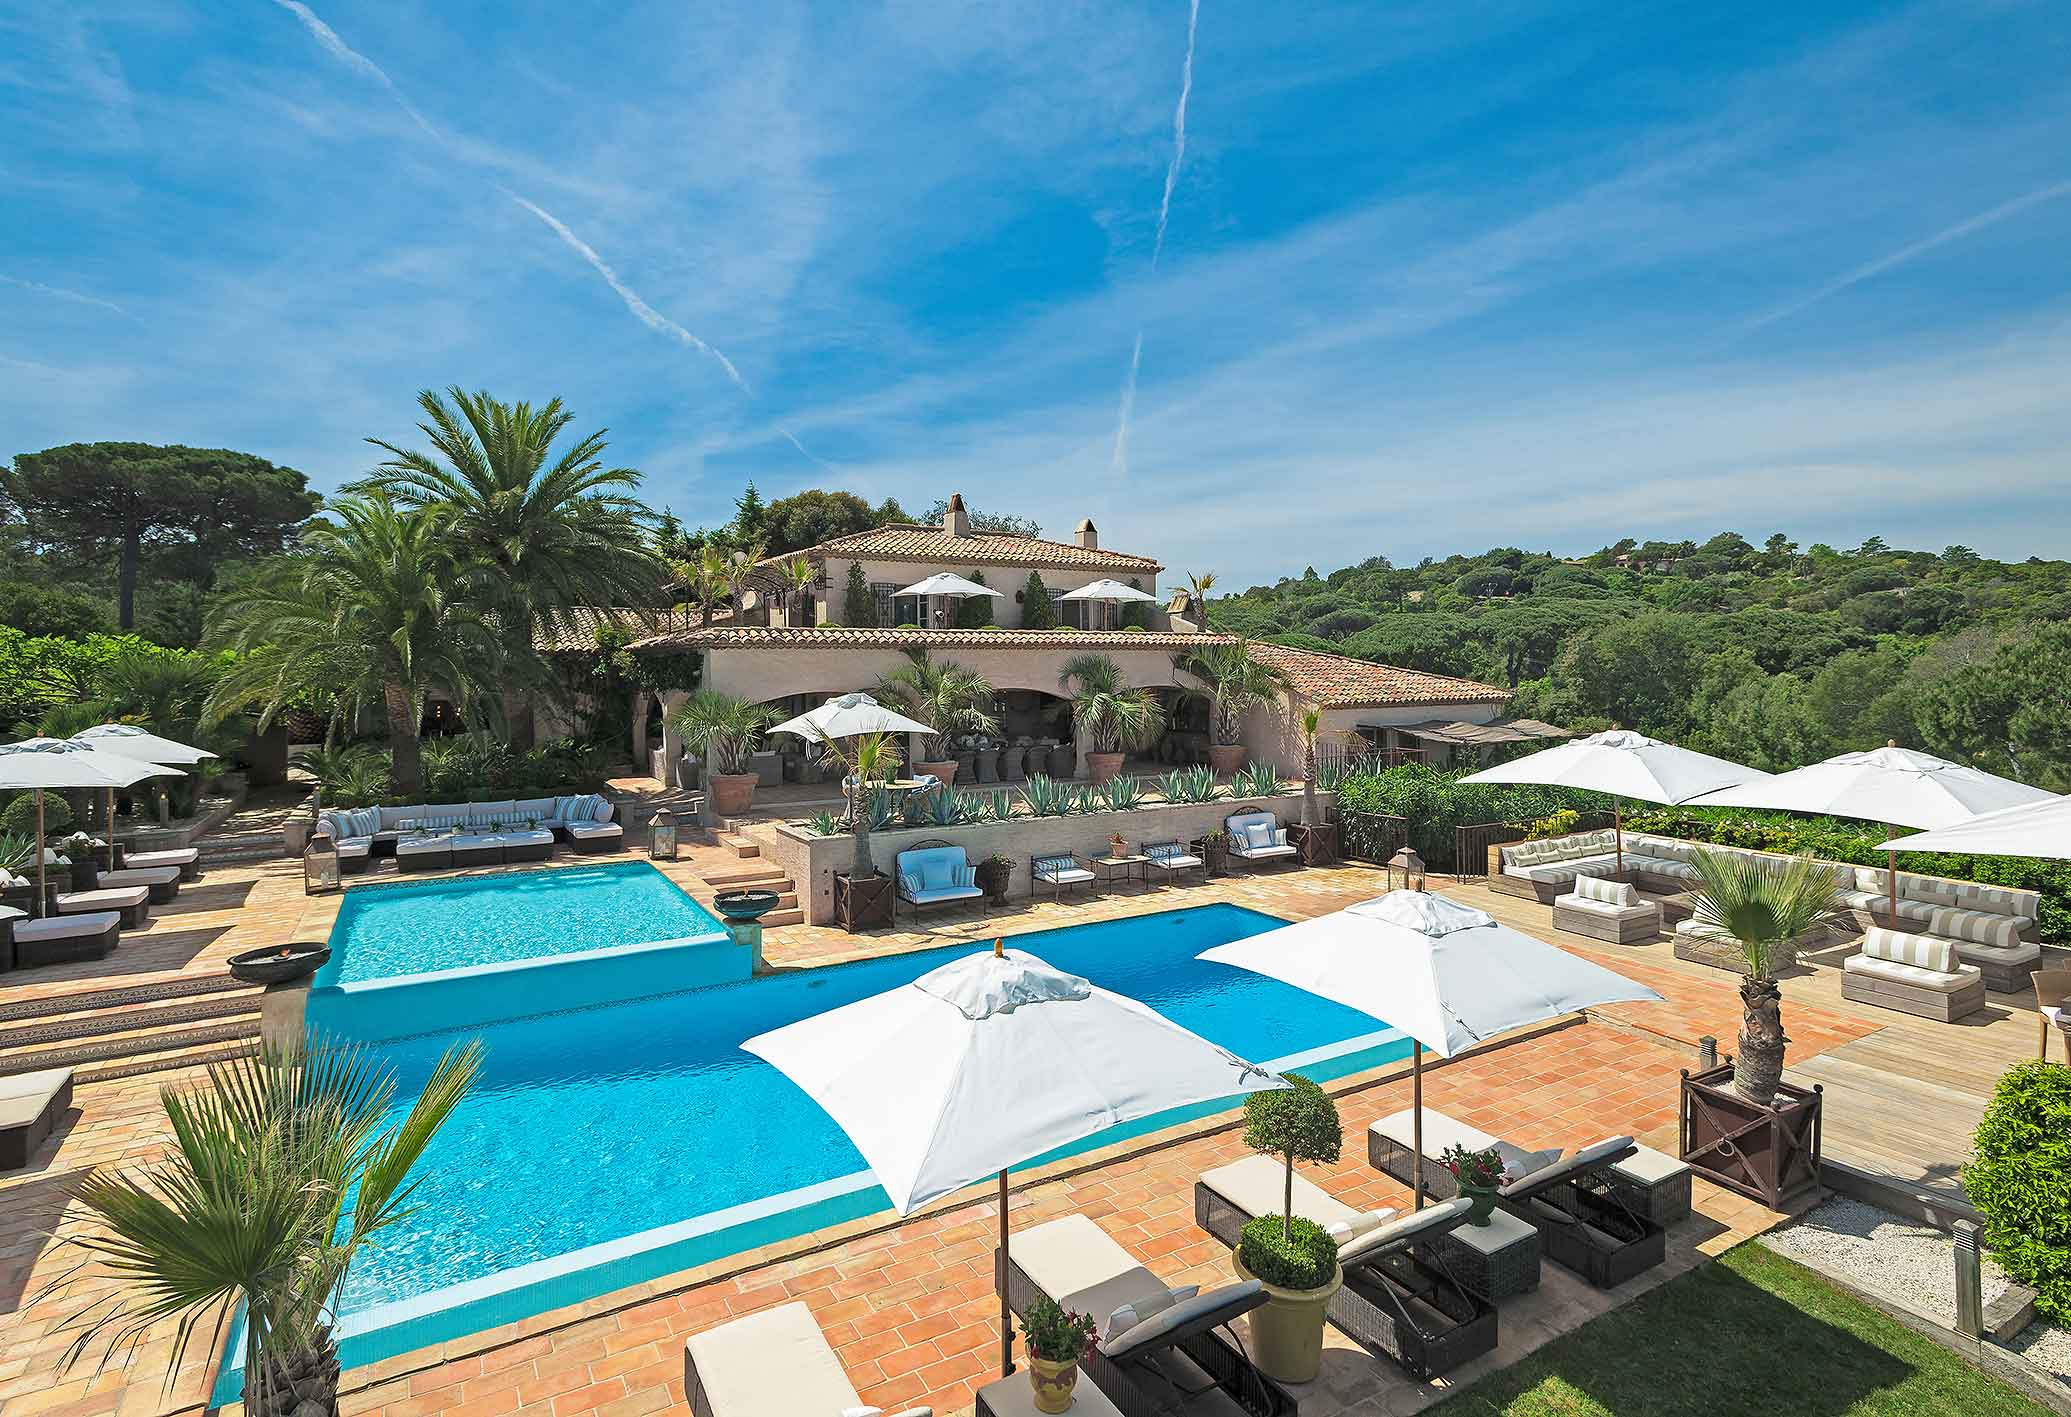 A Provençal-style dream with chic Saint-Tropez flair, Villa Salmanazar rests amid privacy and seclusion in the hills of Ramatuelle, overlooking the famous bay of Pampelonne and the legendary resort town of Saint-Tropez.